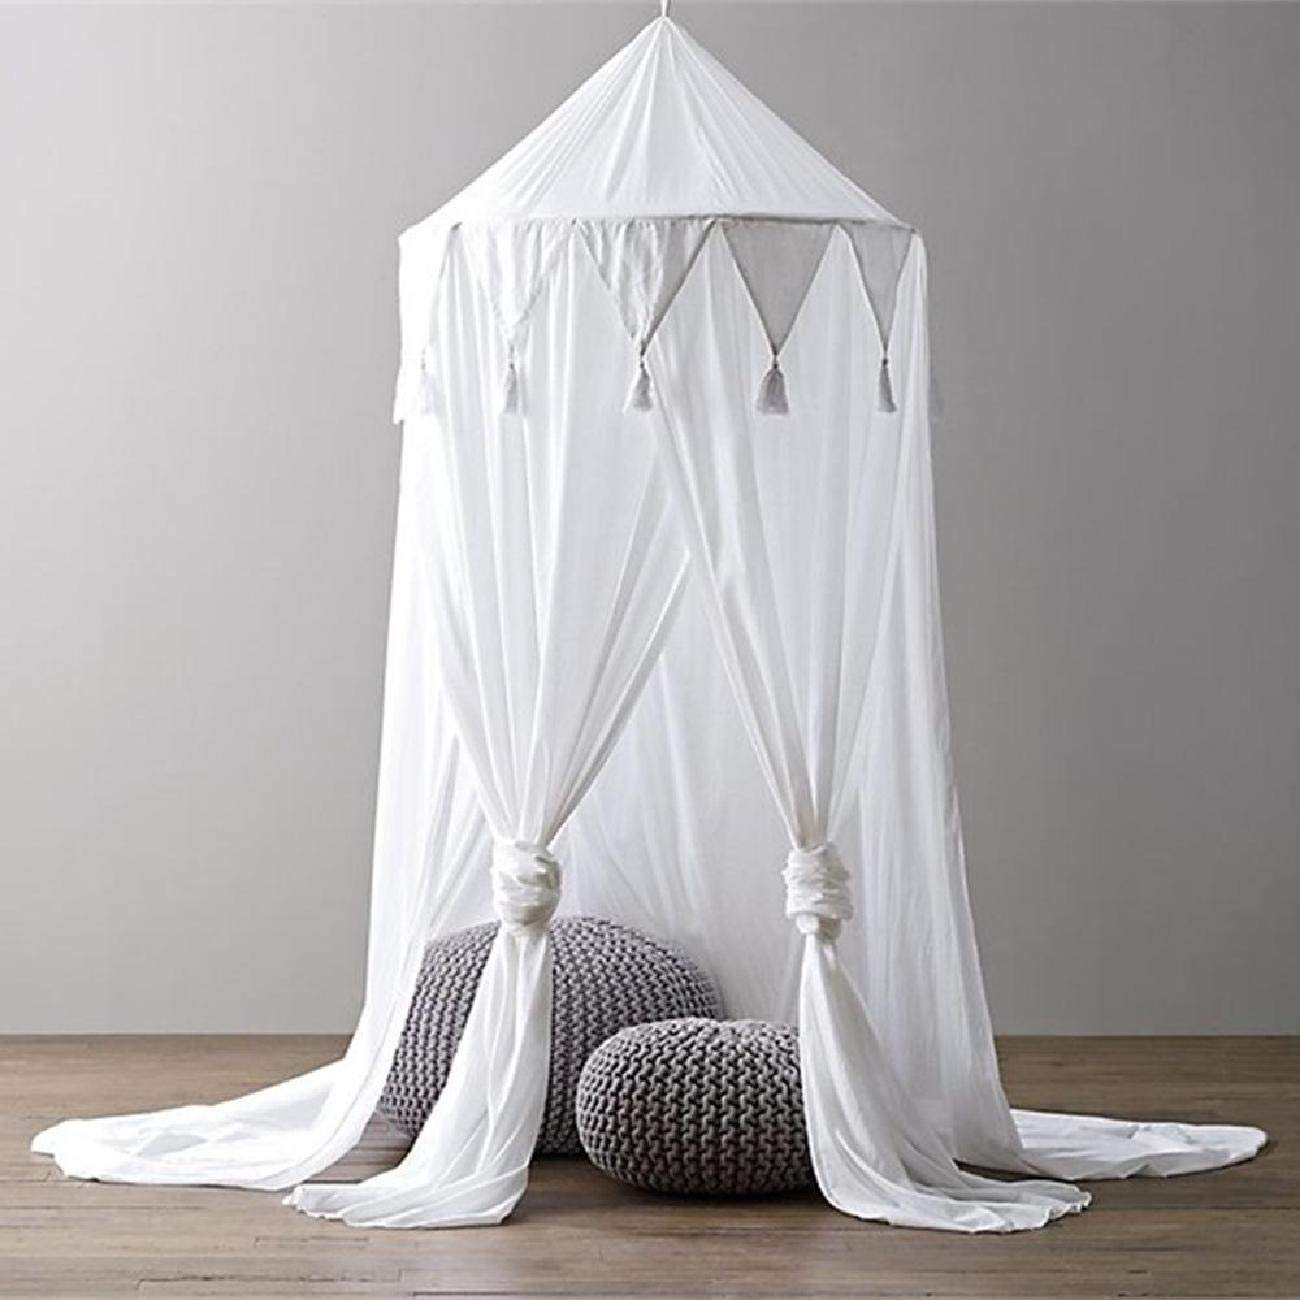 Bed Canopy, Chiffon Reading Nook Tent Dome Triangle Tassel Net with Assembly Tools Bedroom Decoration Indoor Game House for Kids (White)